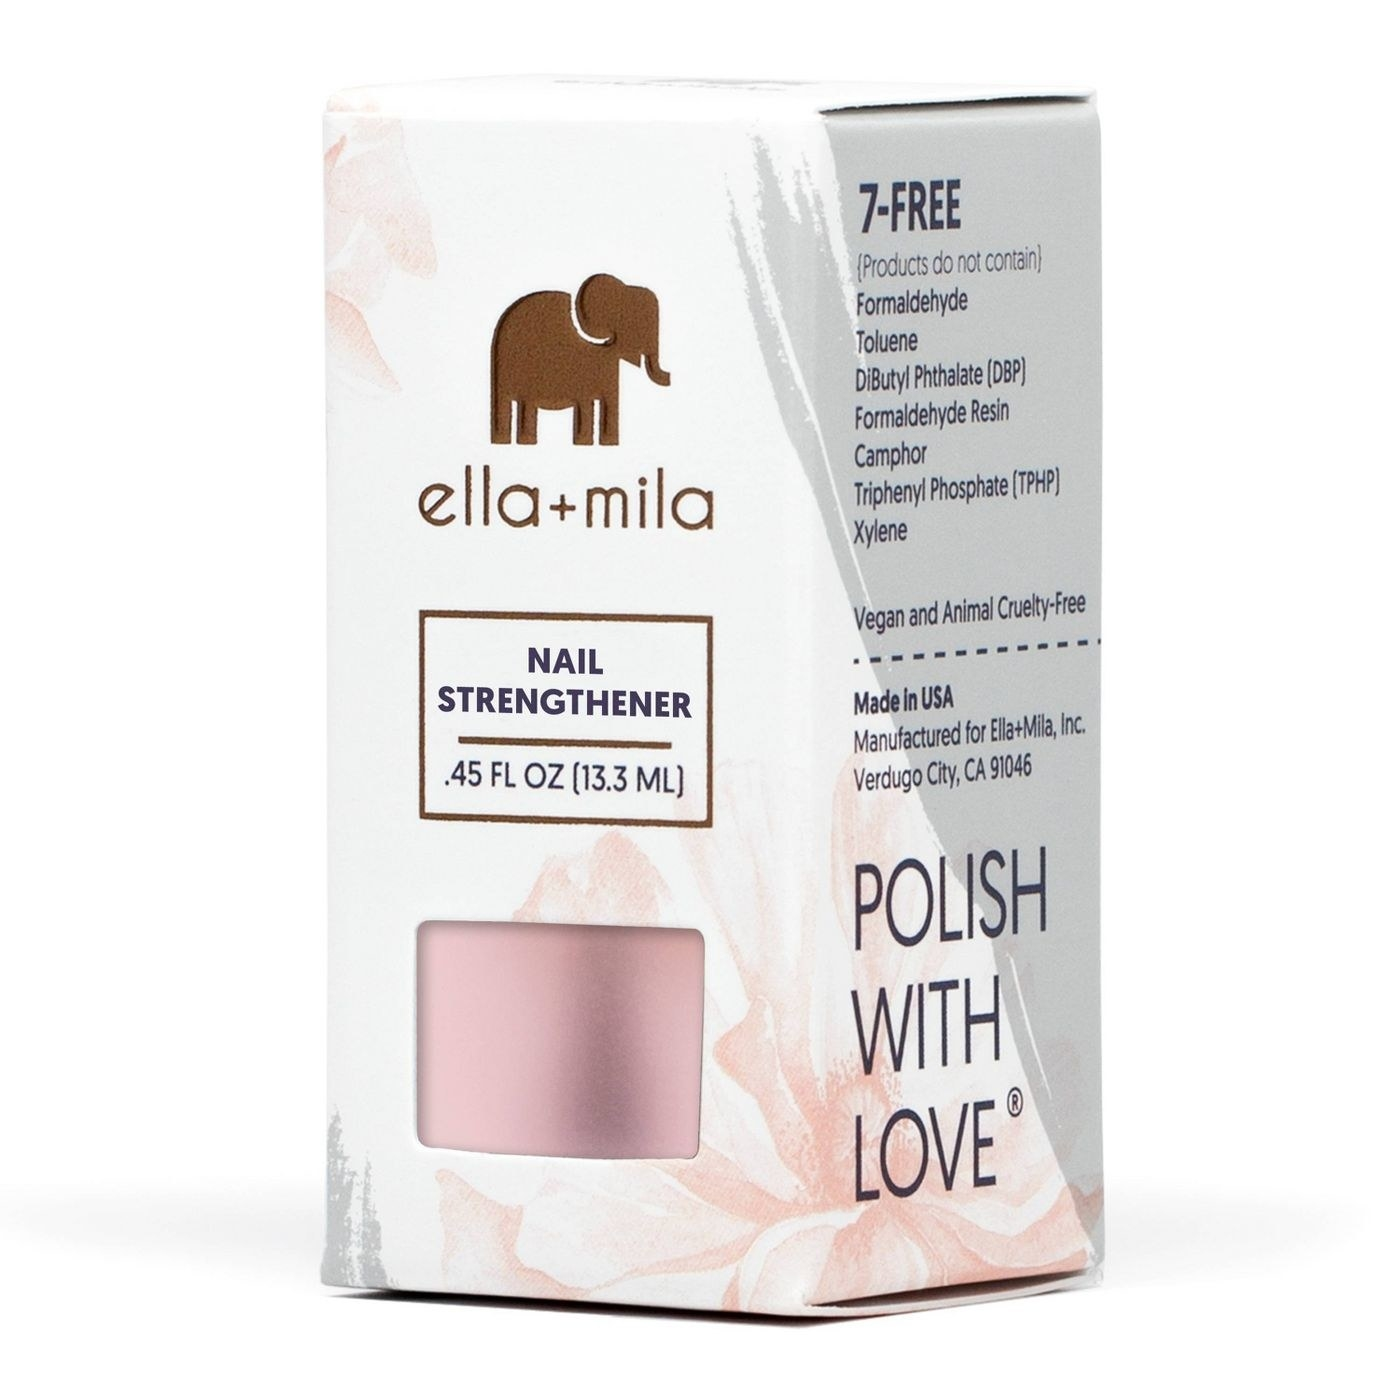 a package of ella + mila nail strengthener